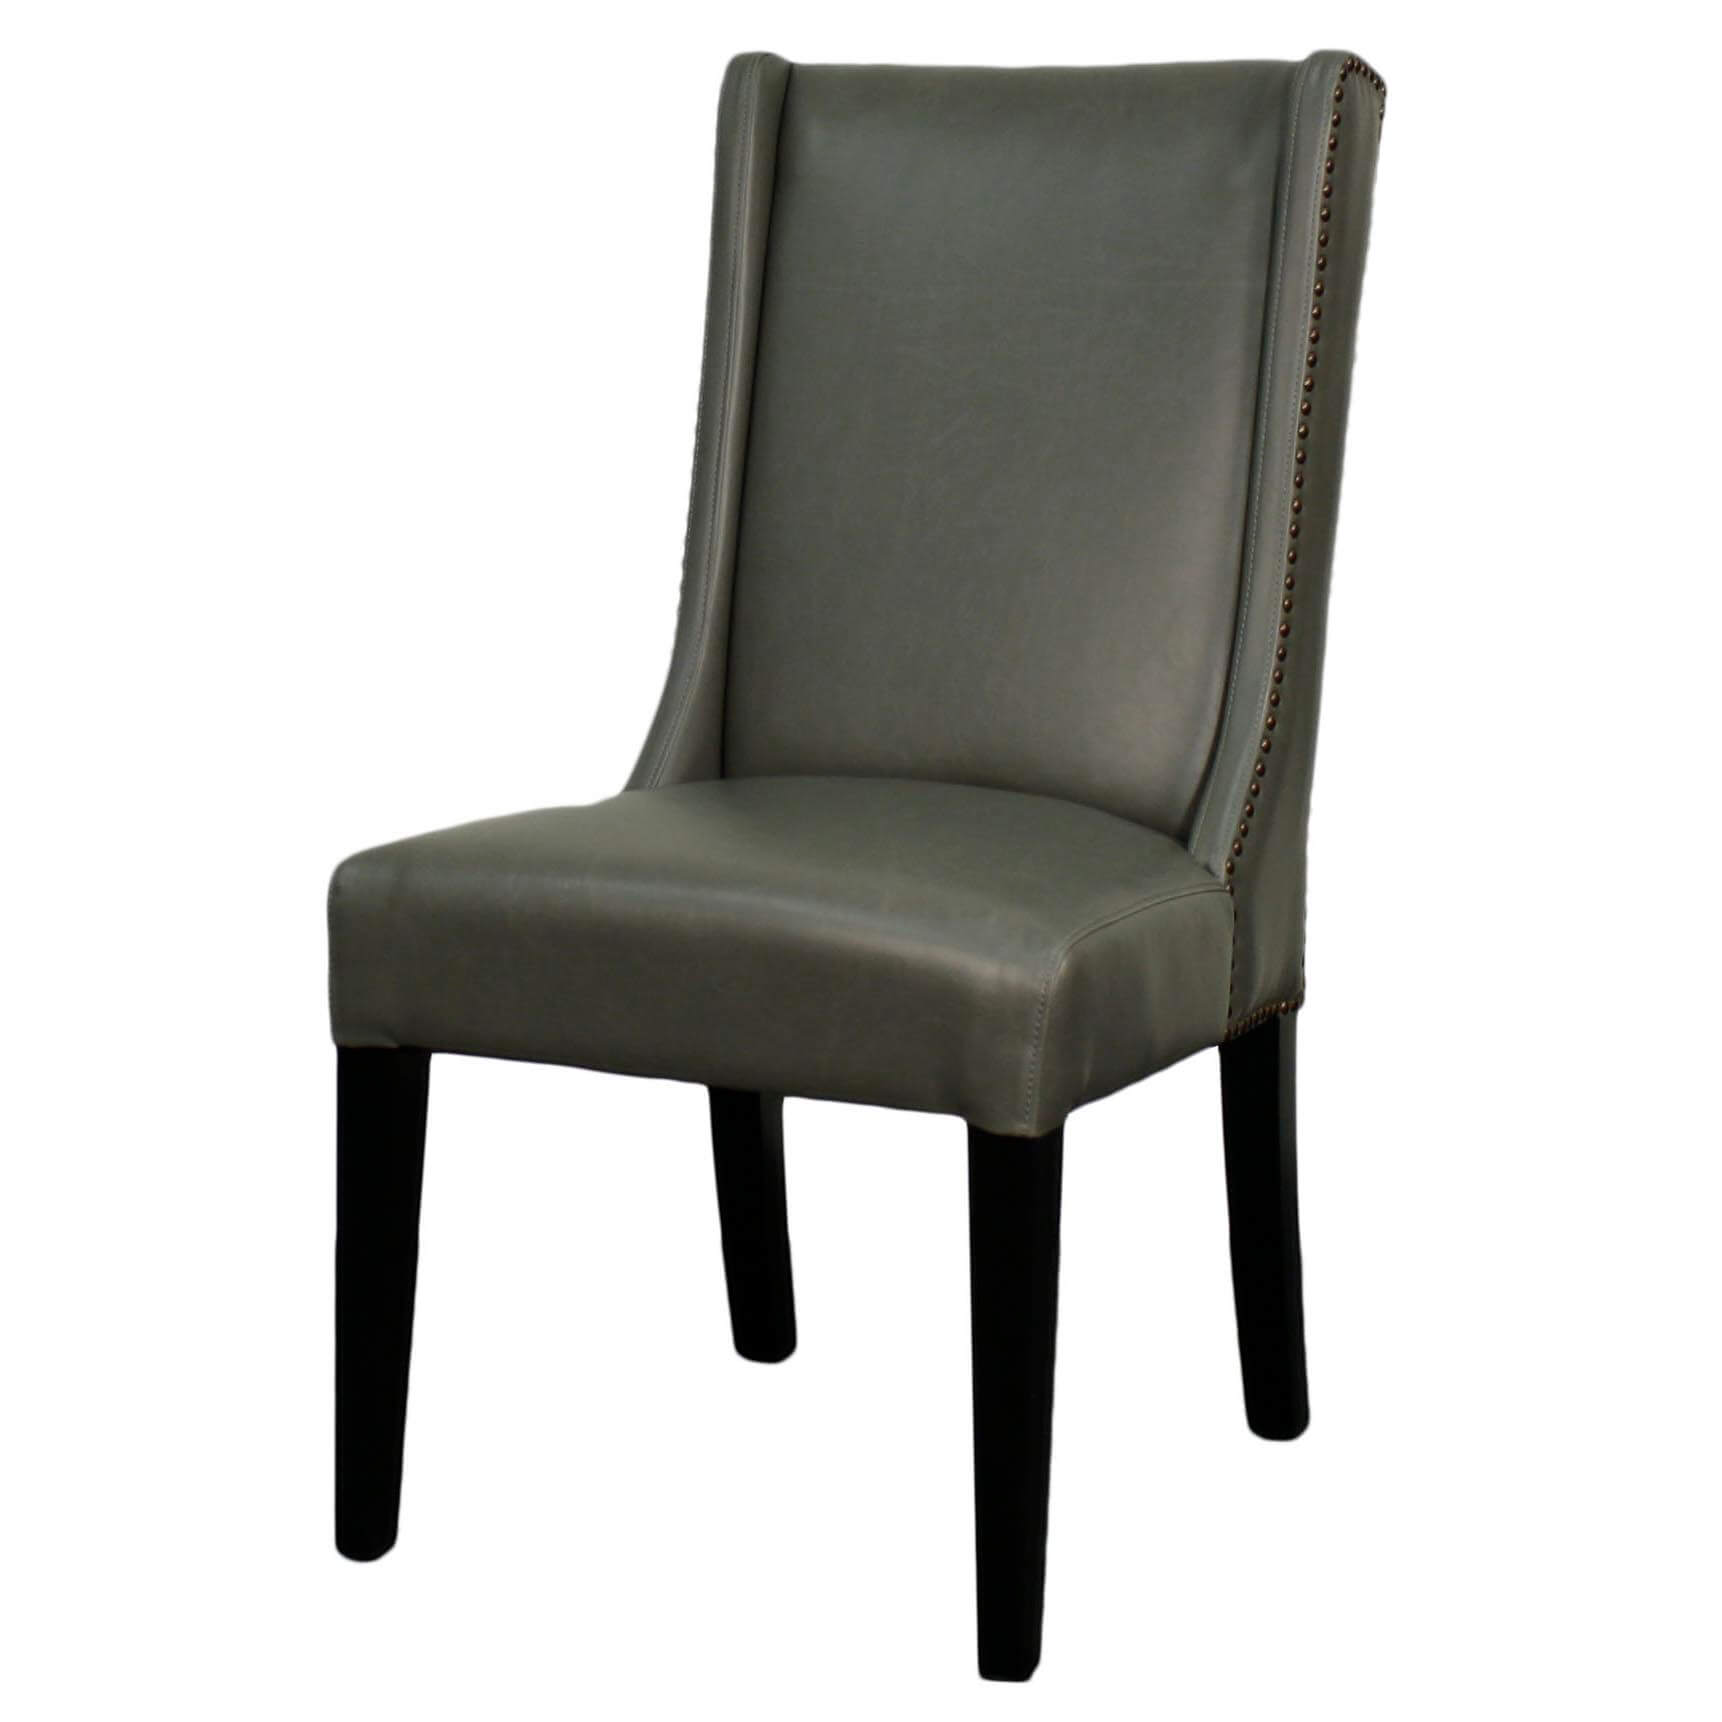 Holden Bonded Leather Dining Chair Black Legs Vintage